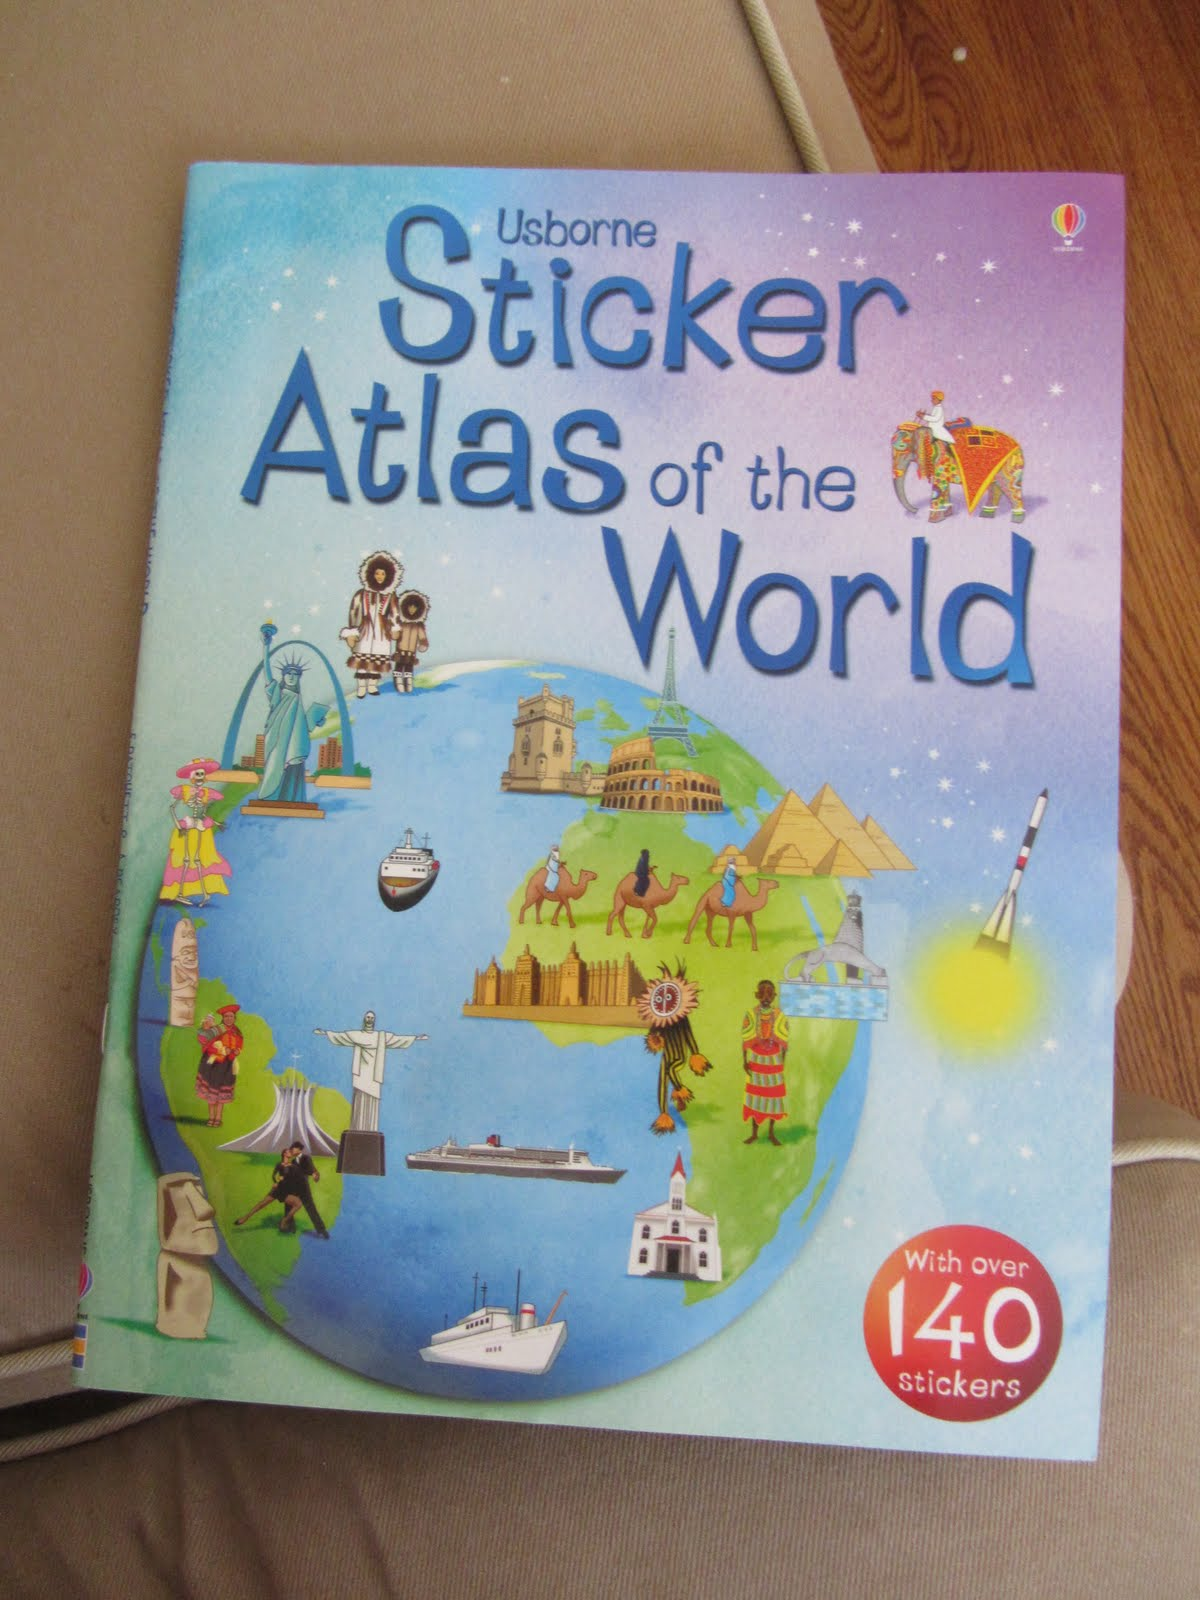 Dk first atlas and usborne sticker atlas of the world my eclectic so using this book for stickers instead of making my own we will read through our atlas like we planned but find the stickers for that part of the world gumiabroncs Image collections